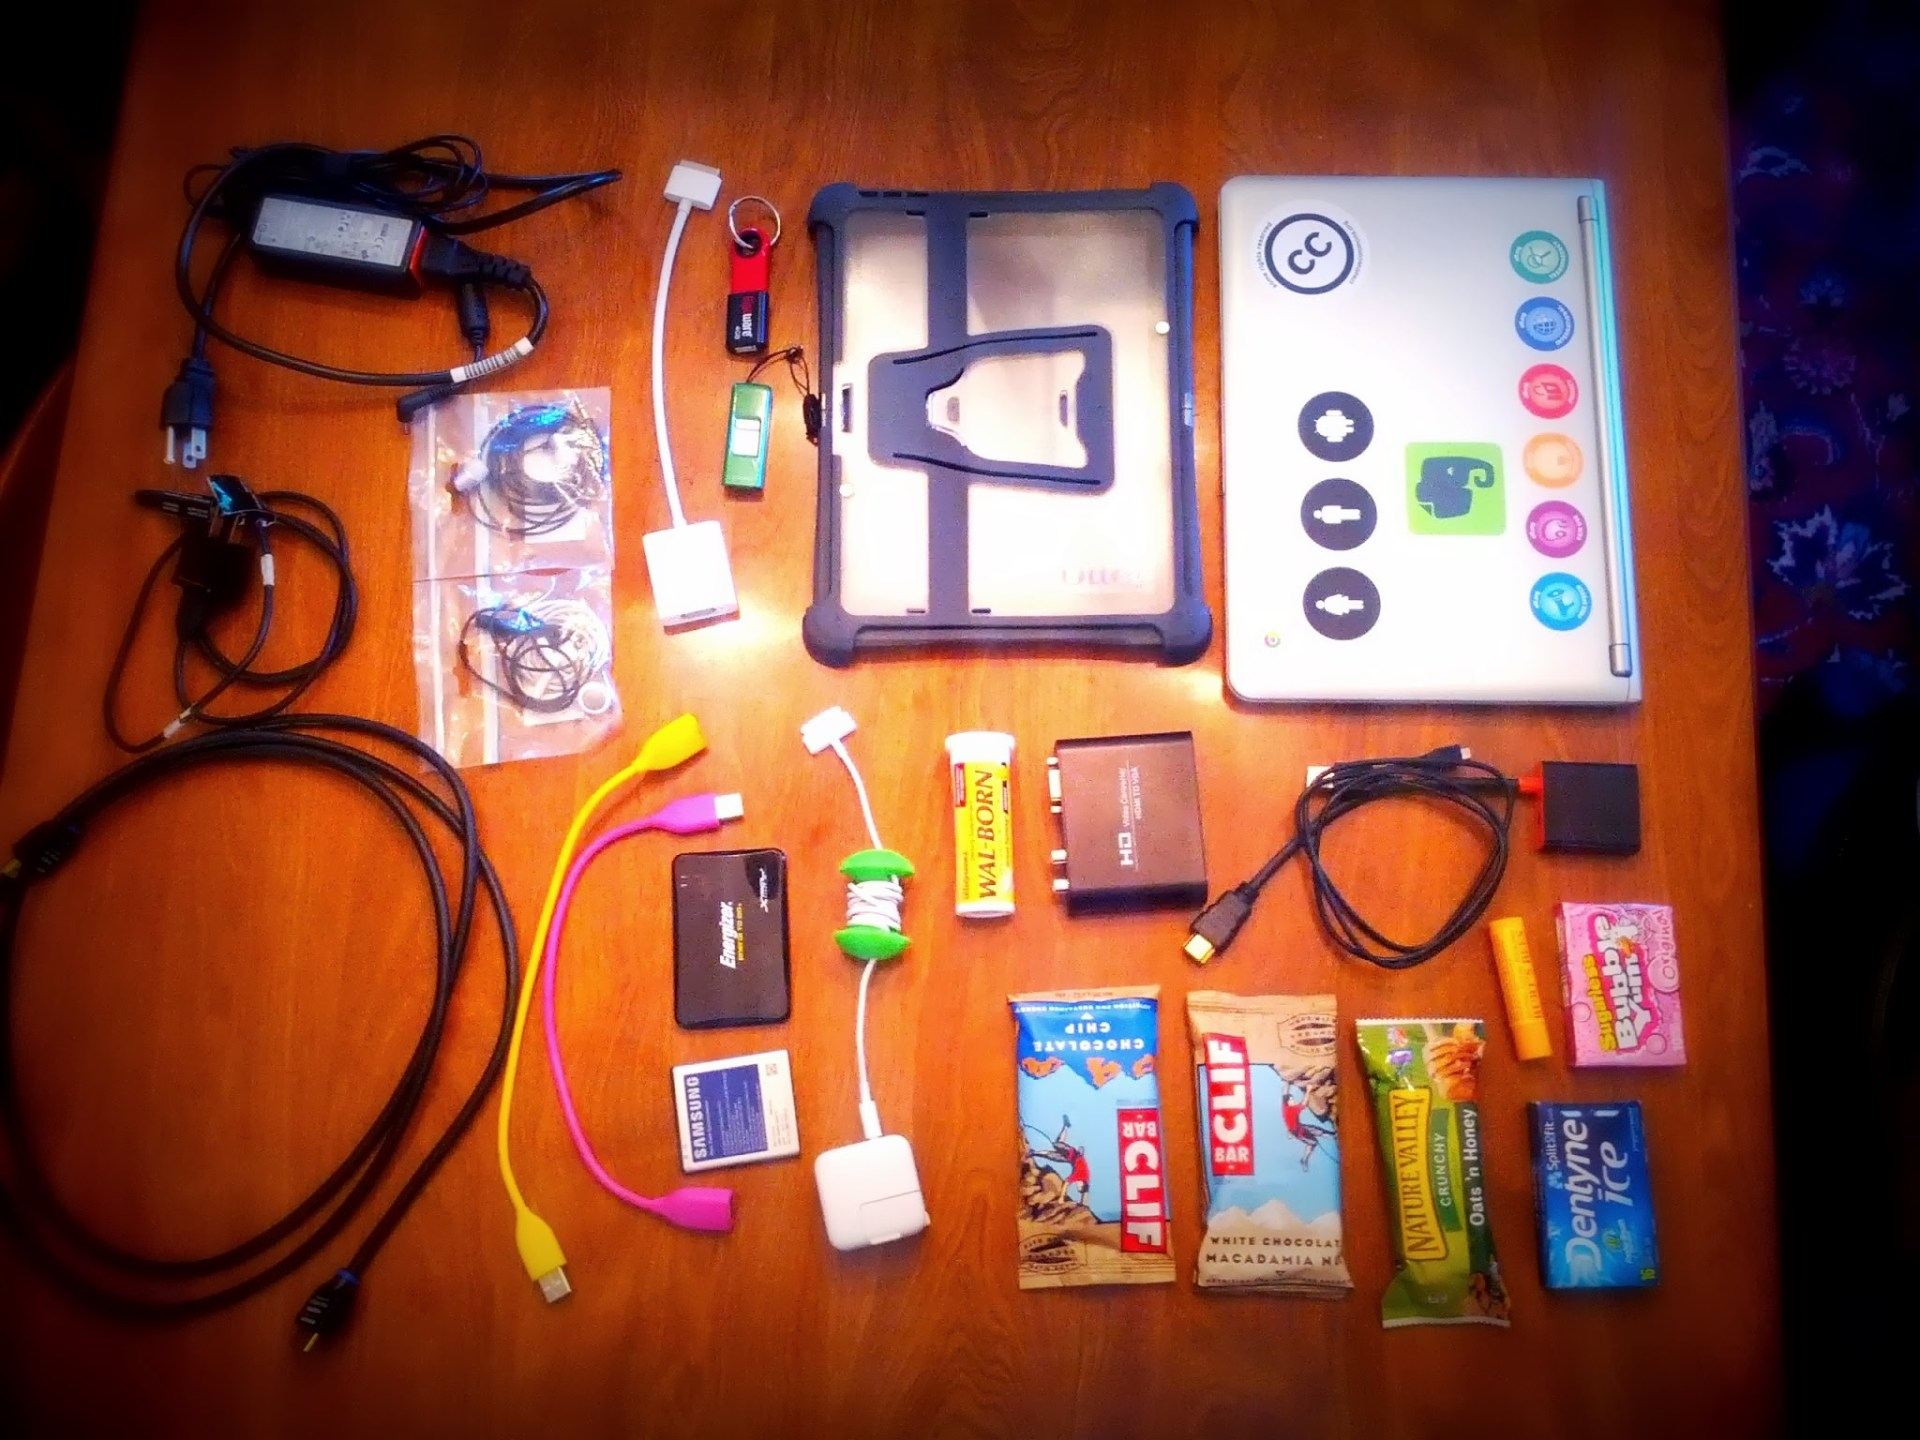 Digital MacGyver: What's In Your Bag – The Chromebook, Chromecast, and a Flexible Solution